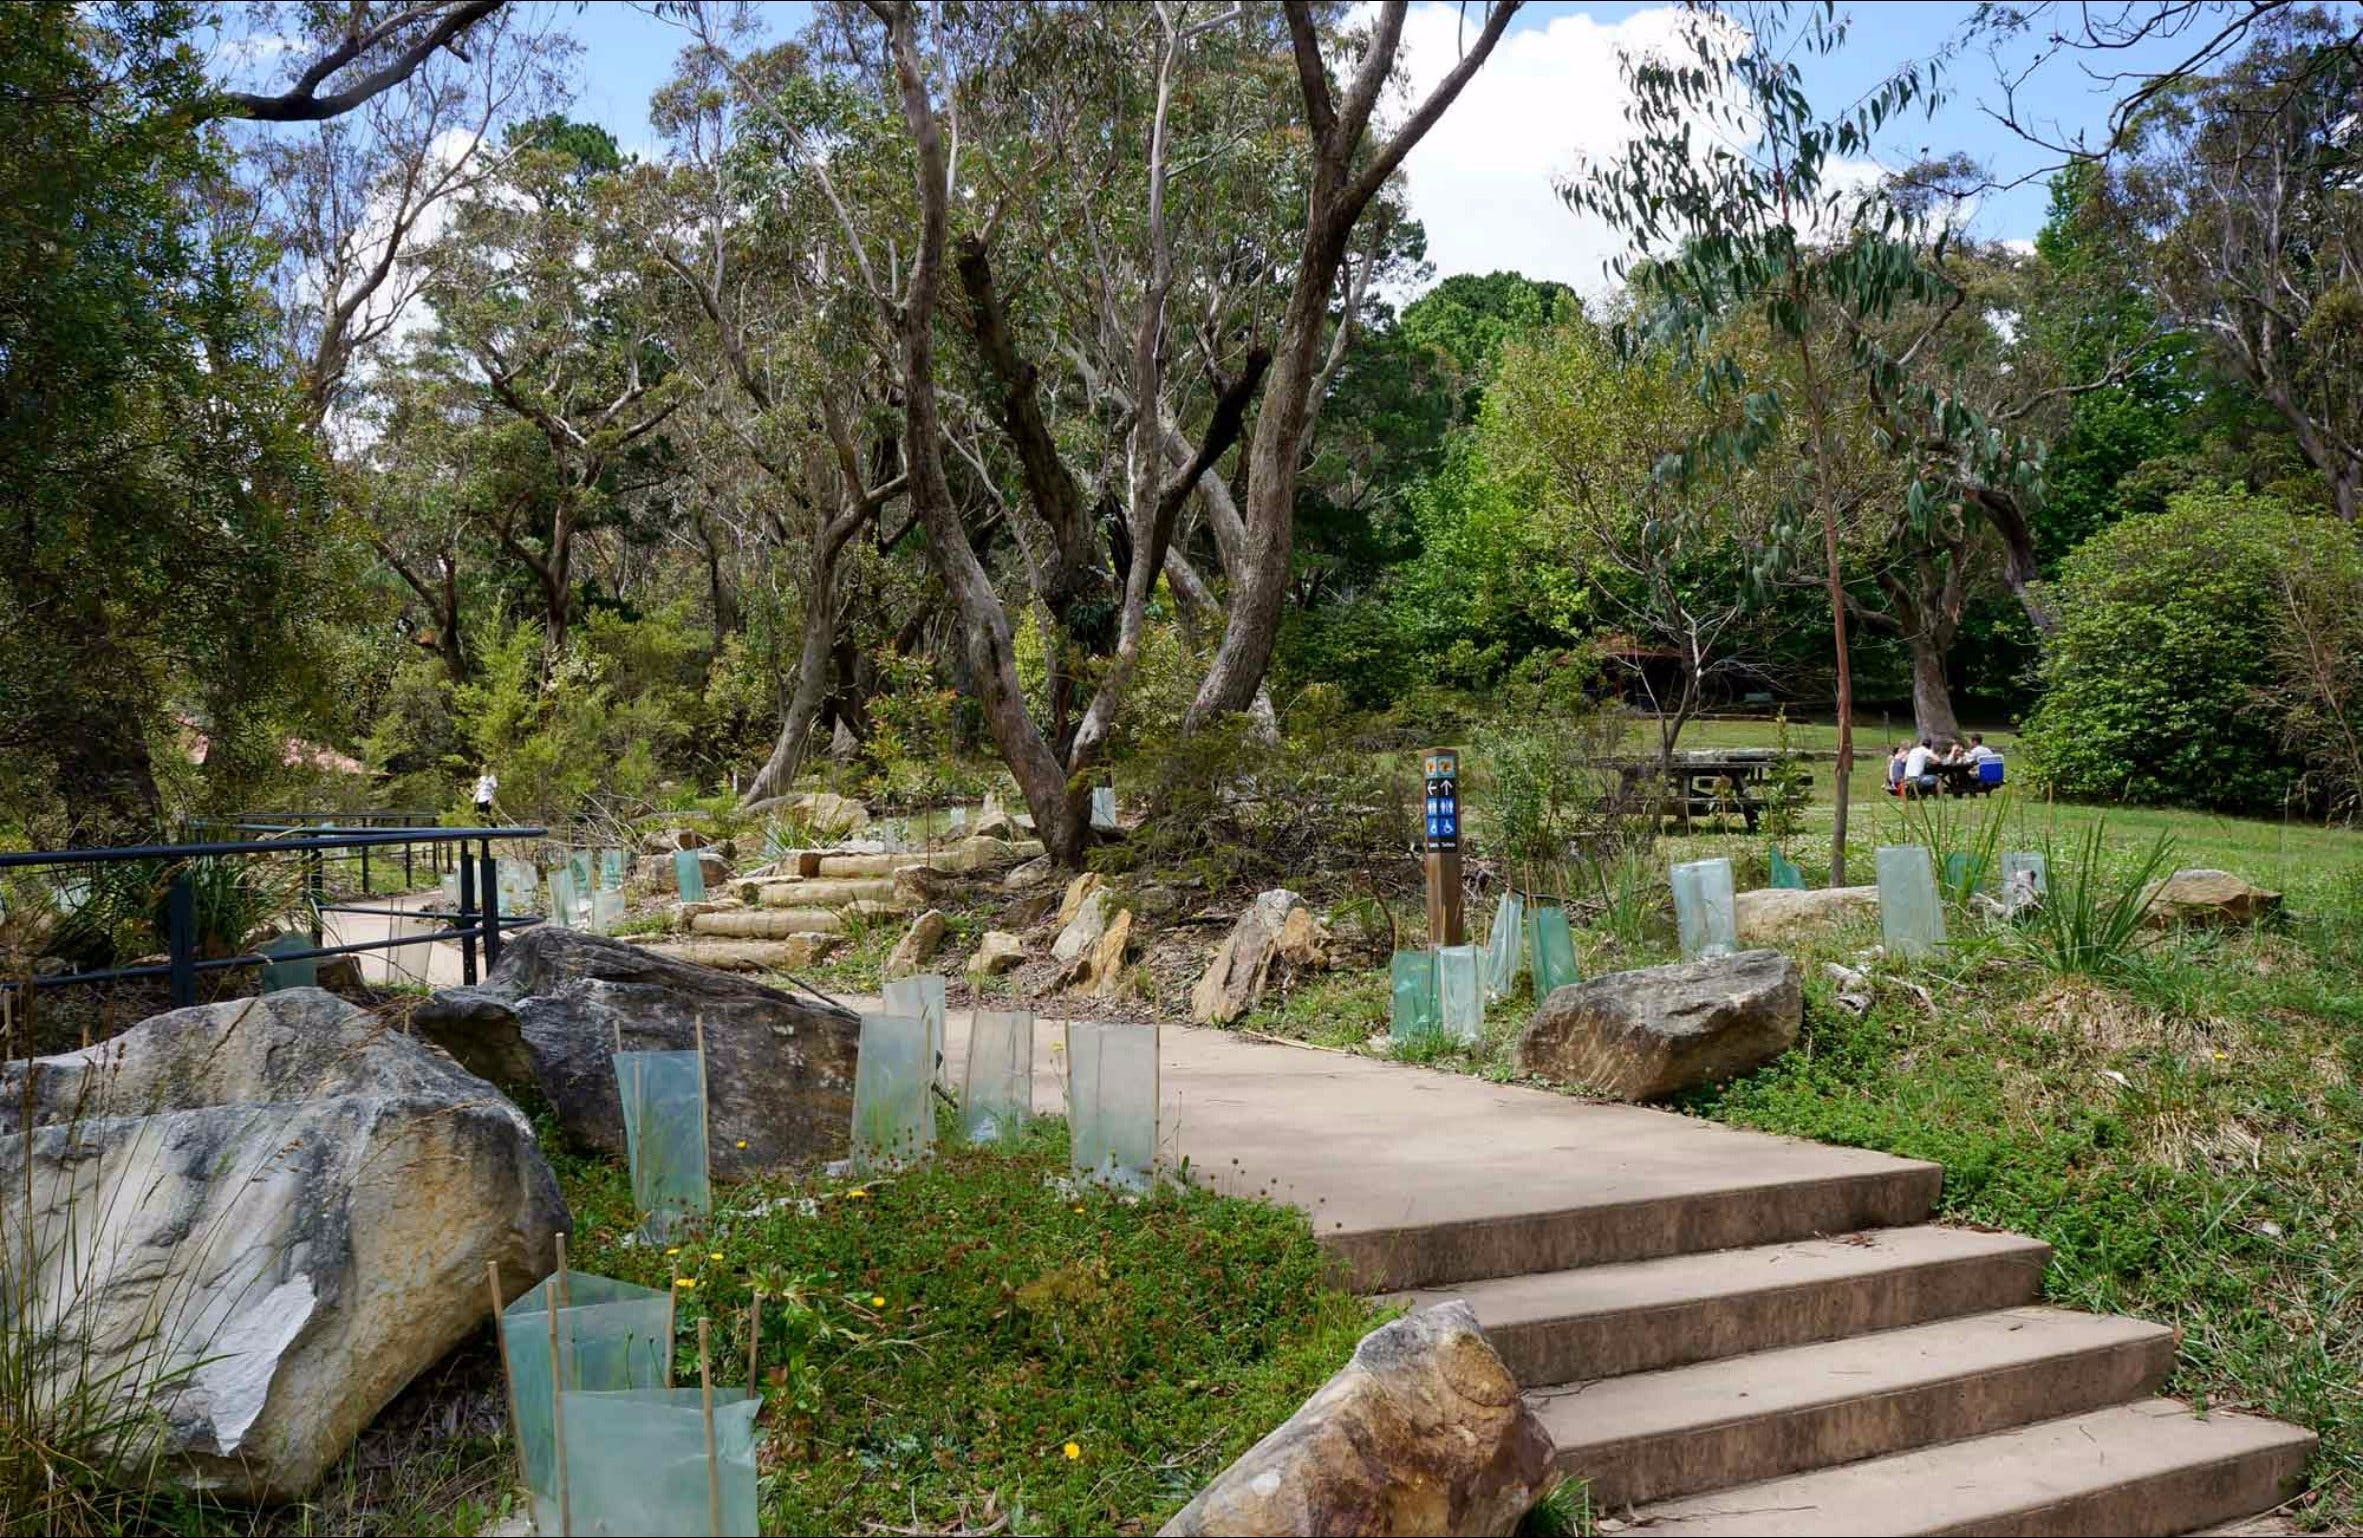 Wentworth Falls picnic area - Accommodation Mount Tamborine